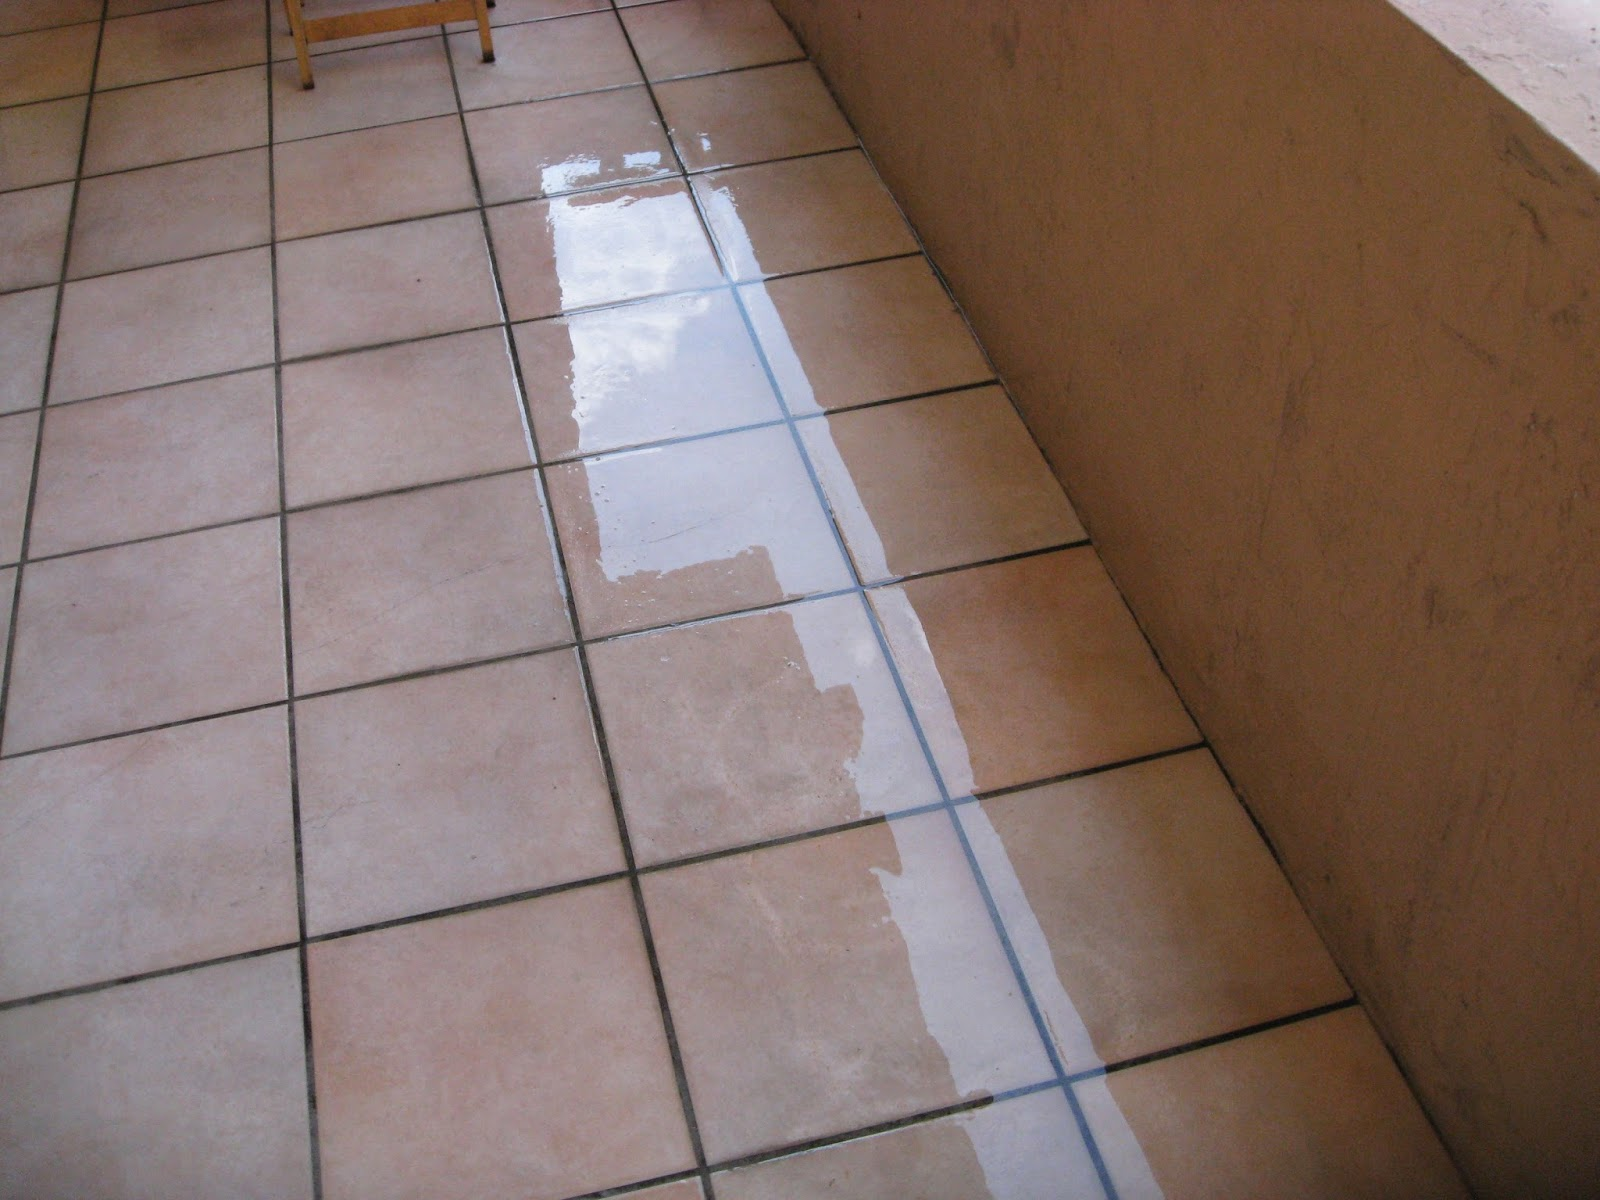 How to remove stains from floor tiles